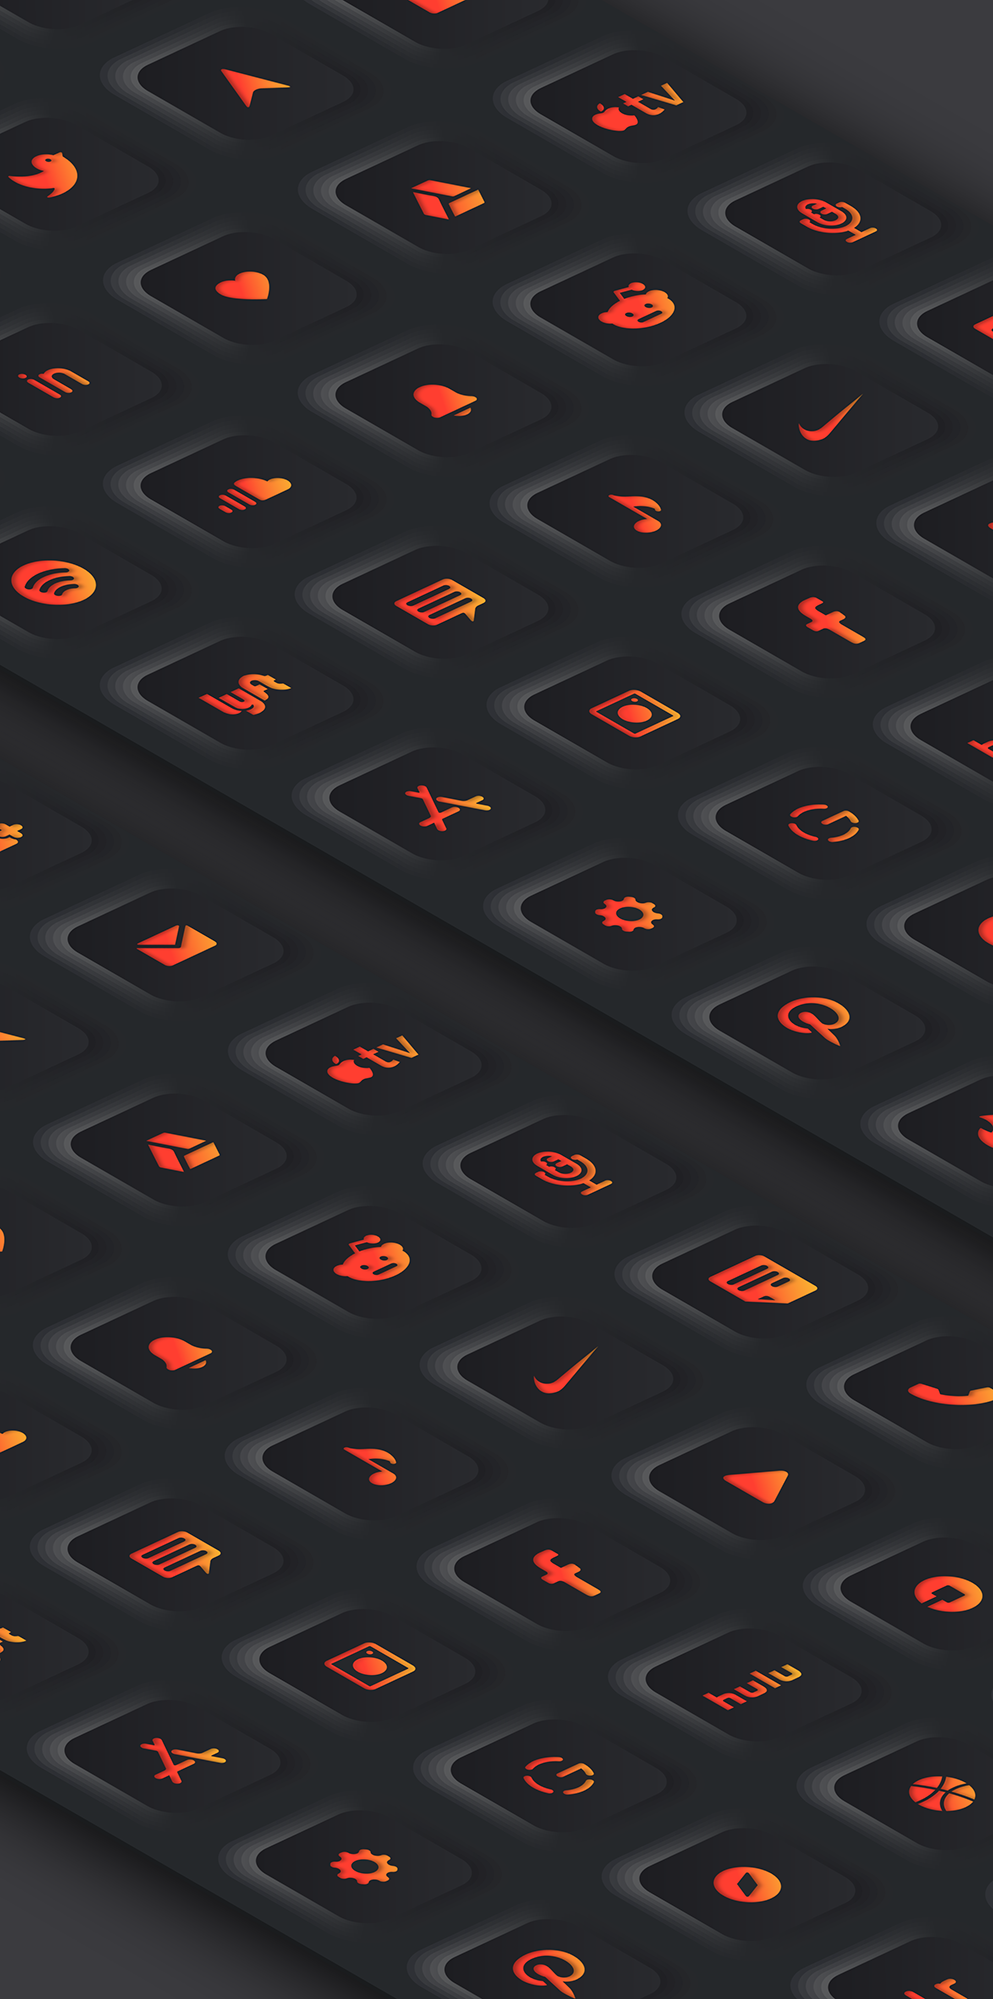 Volcanic Dreams ios 14 icons